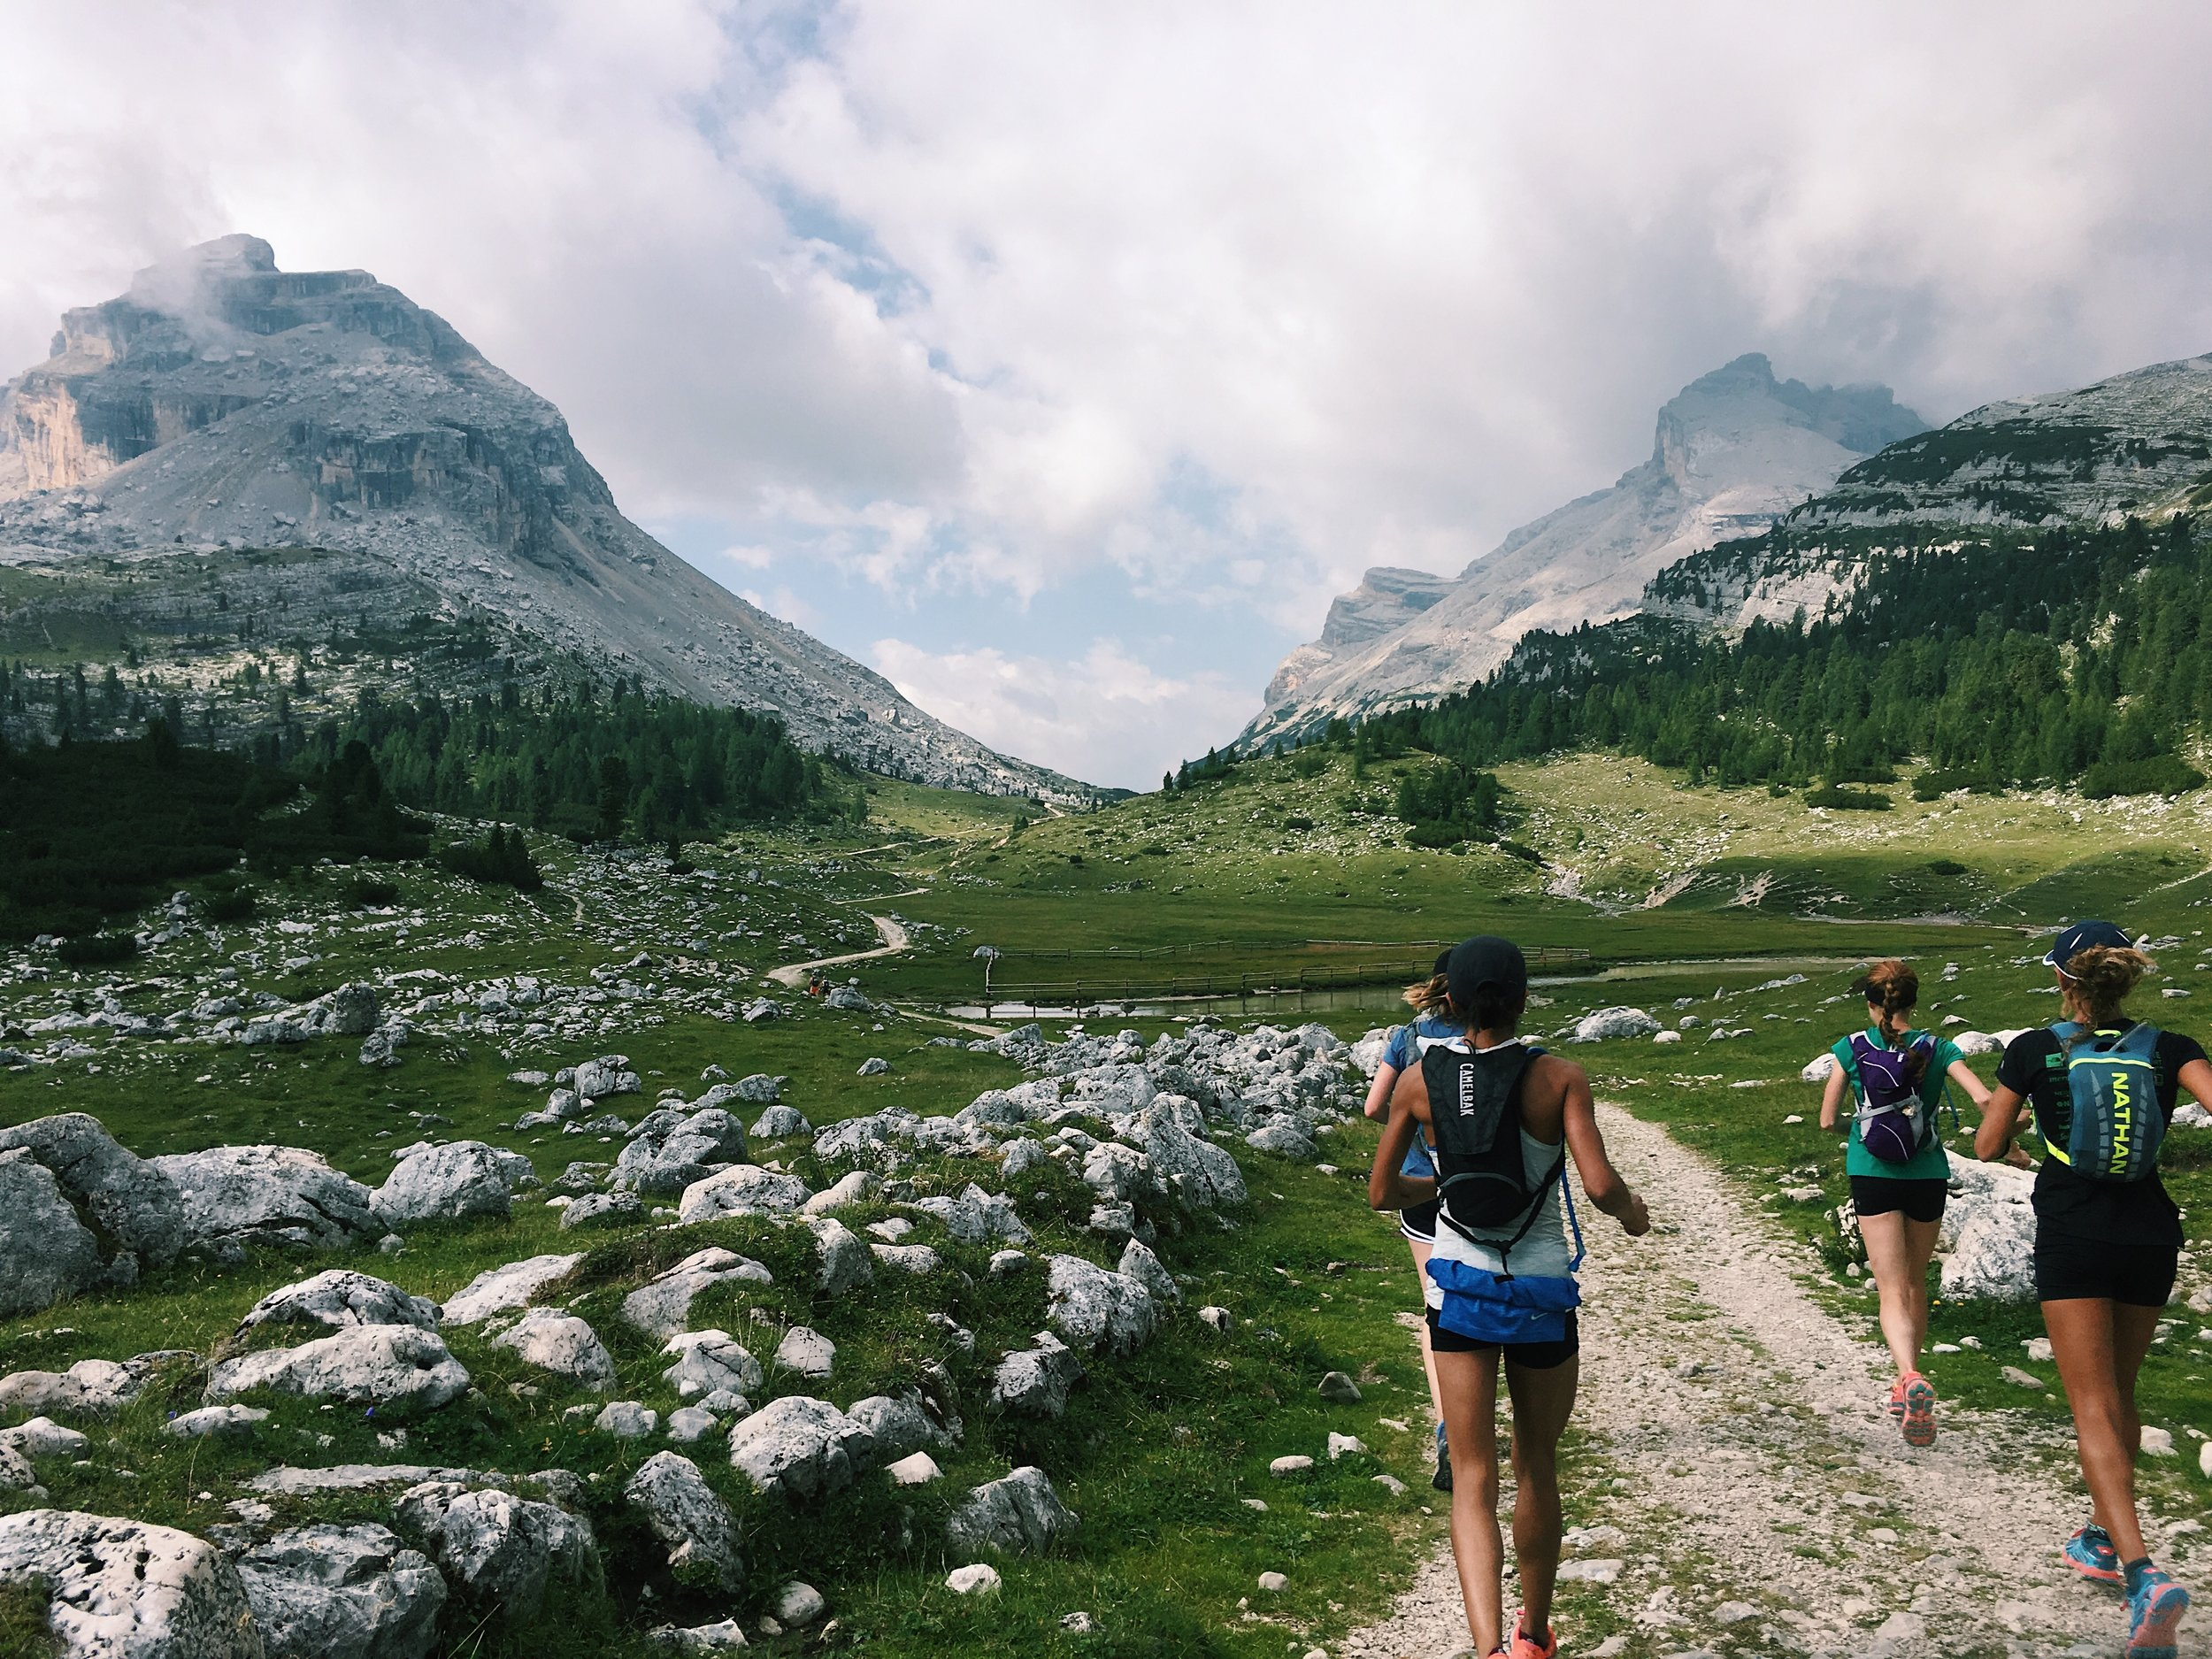 Dolomites Trail Running Alta Via 1 Hut to Hut RIfugio Fanes to Rifugio Lagazuoi